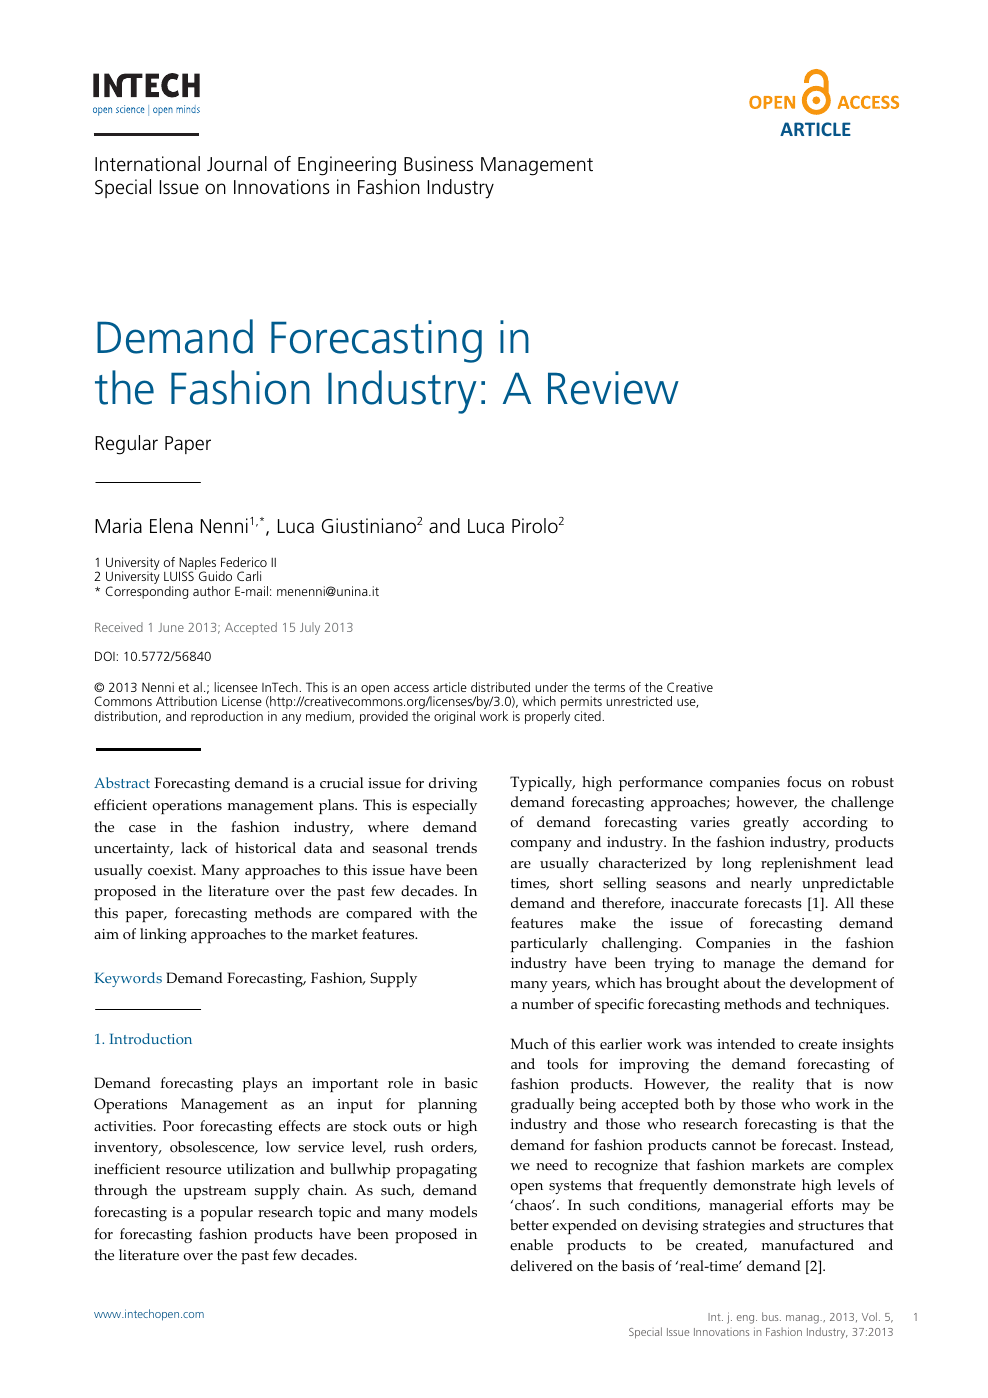 Demand Forecasting in the Fashion Industry: A Review – topic